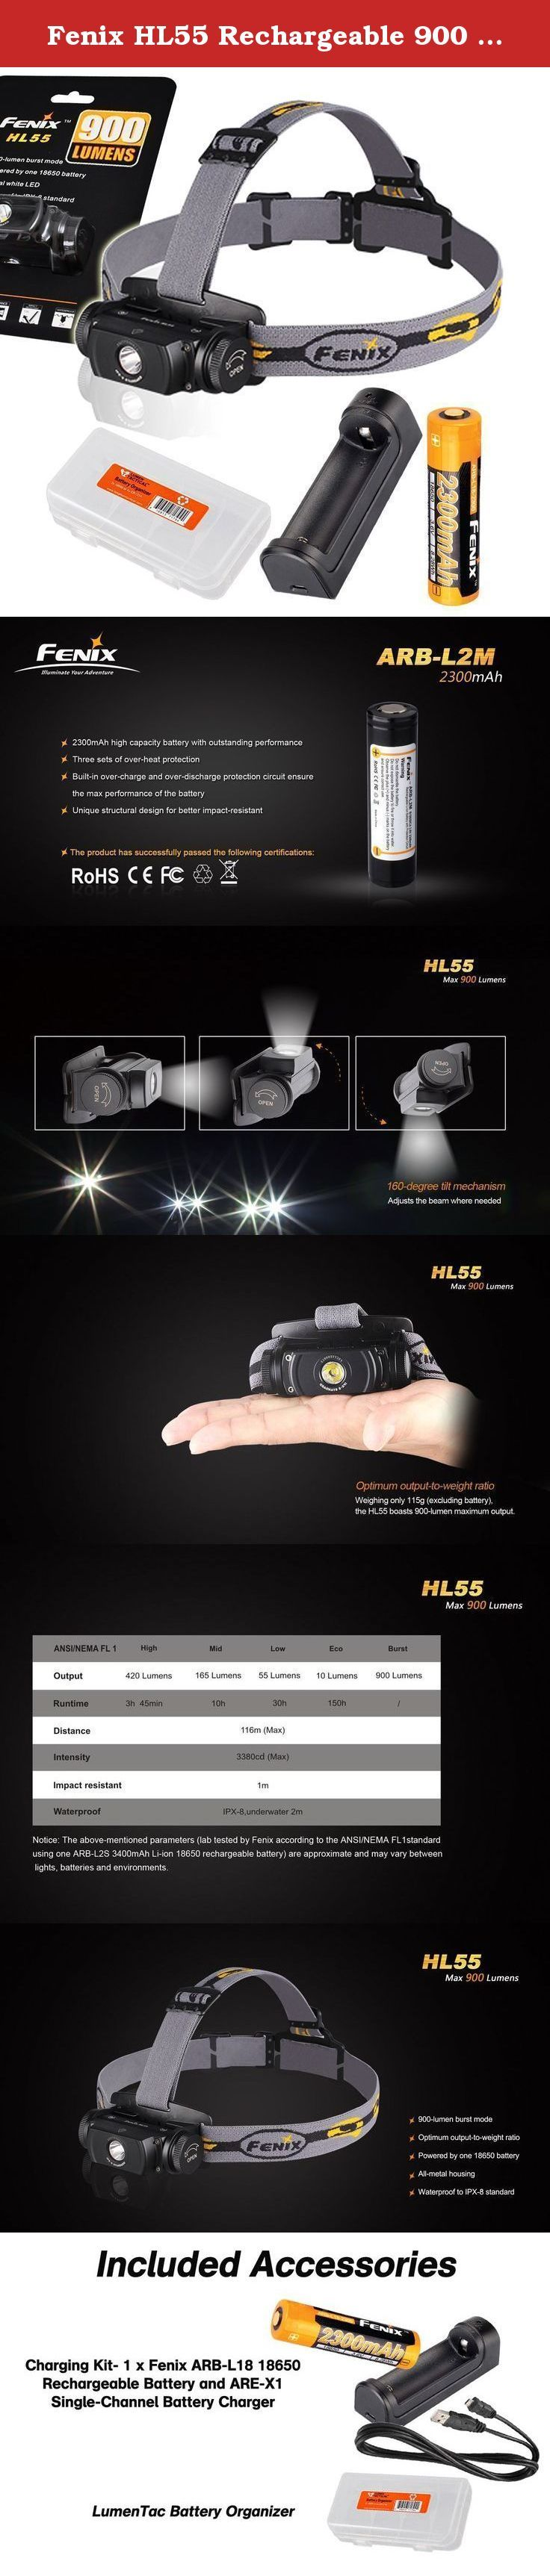 Fenix HL55 Rechargeable 900 Lumens Headlamp with Genuine Fenix Rechargeable Battery, Charger and LumenTac Battery Organizer. The Fenix HL55 headlamp offers four brightness levels plus 900-lumen burst mode and 150-hour runtime from one 18650 battery or two CR123A batteries. Neutral white light means superior definition and penetration in high-humidity environments. A 116-meter carry distance reaches farther while the side switch on the head is all you need for ON/OFF, output selection, and...